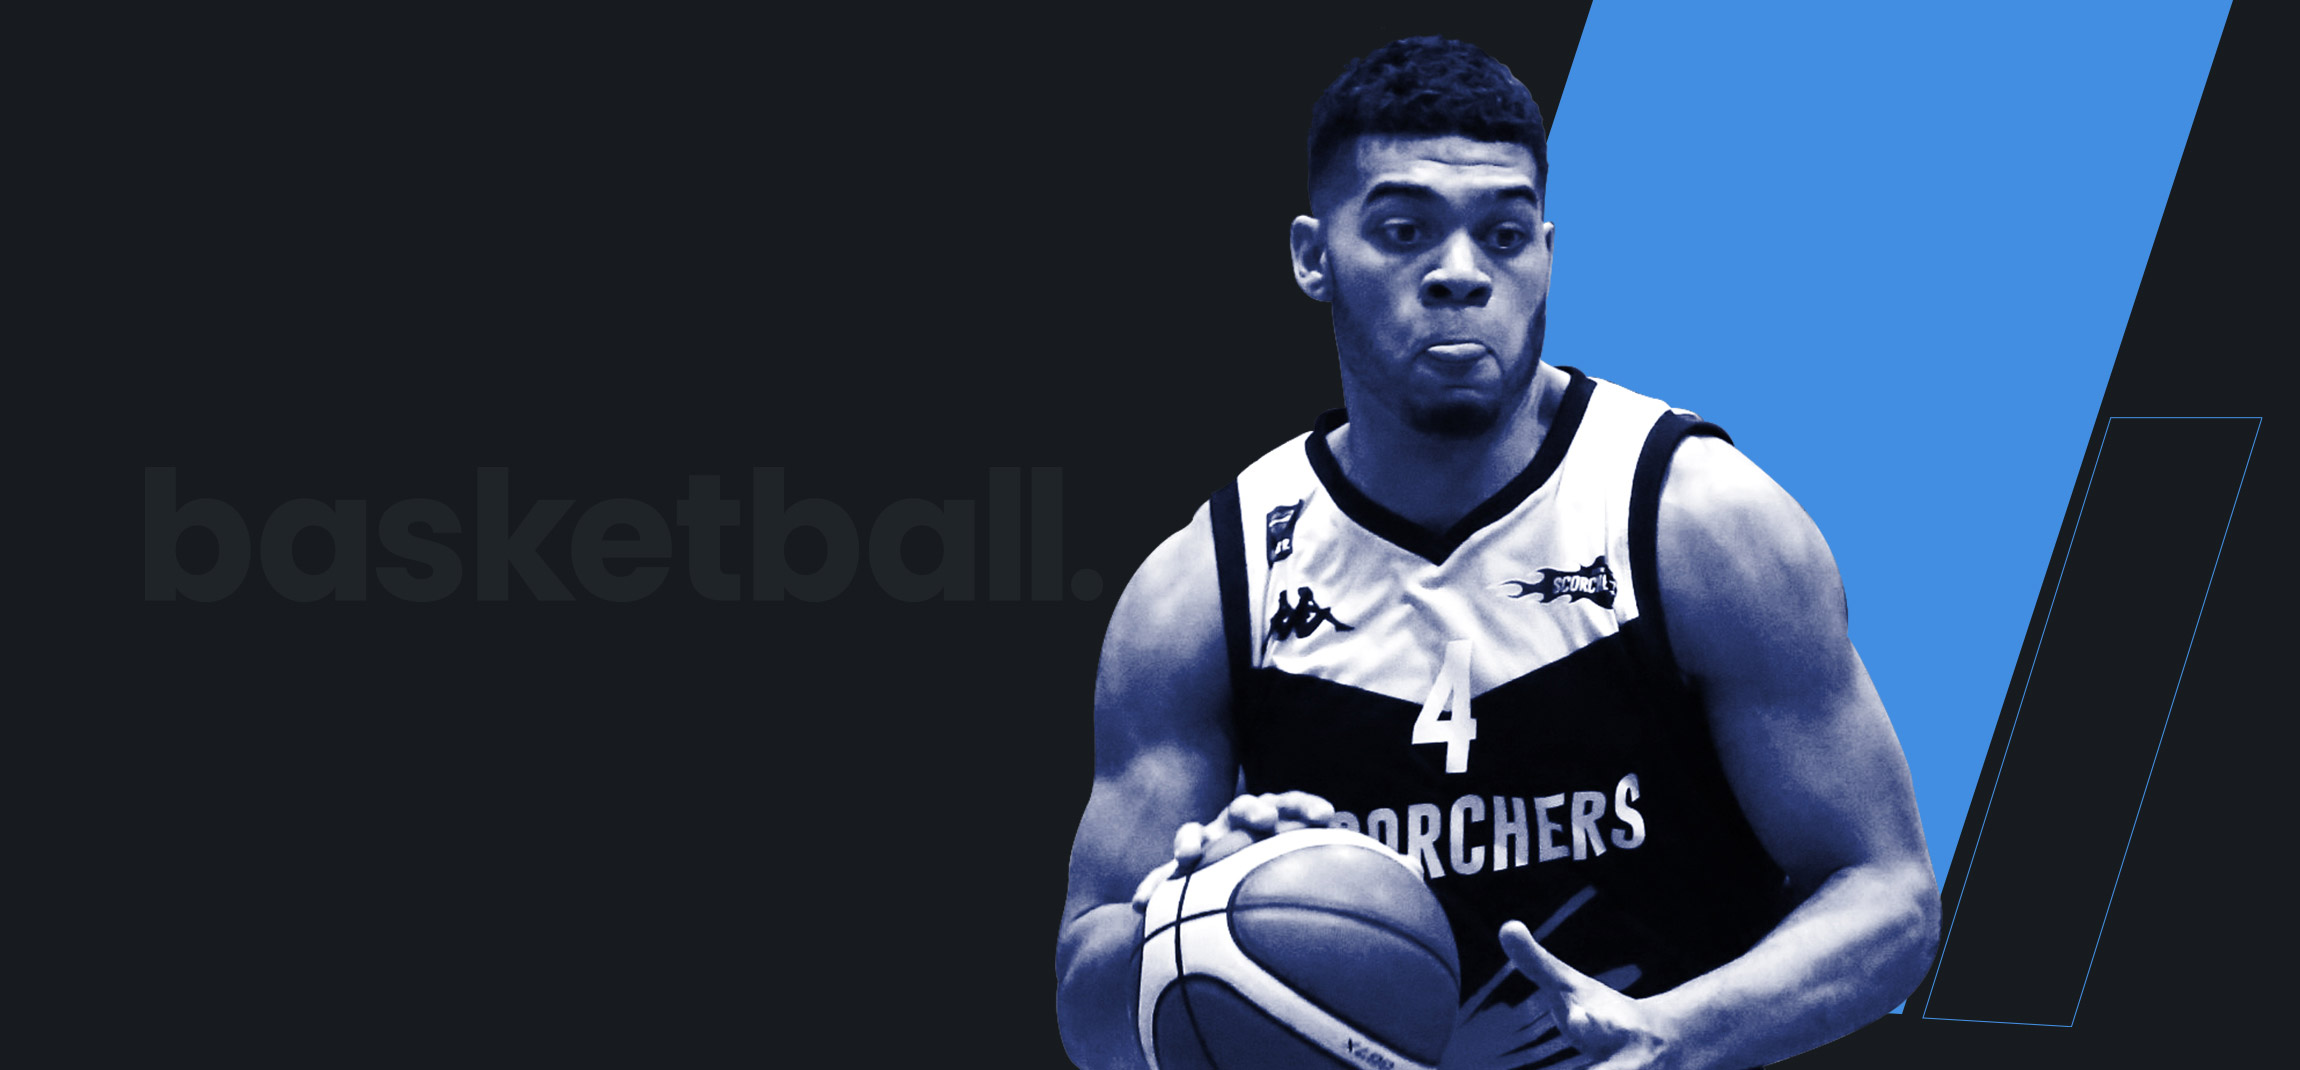 We are Matchroom Sport - We are Basketball